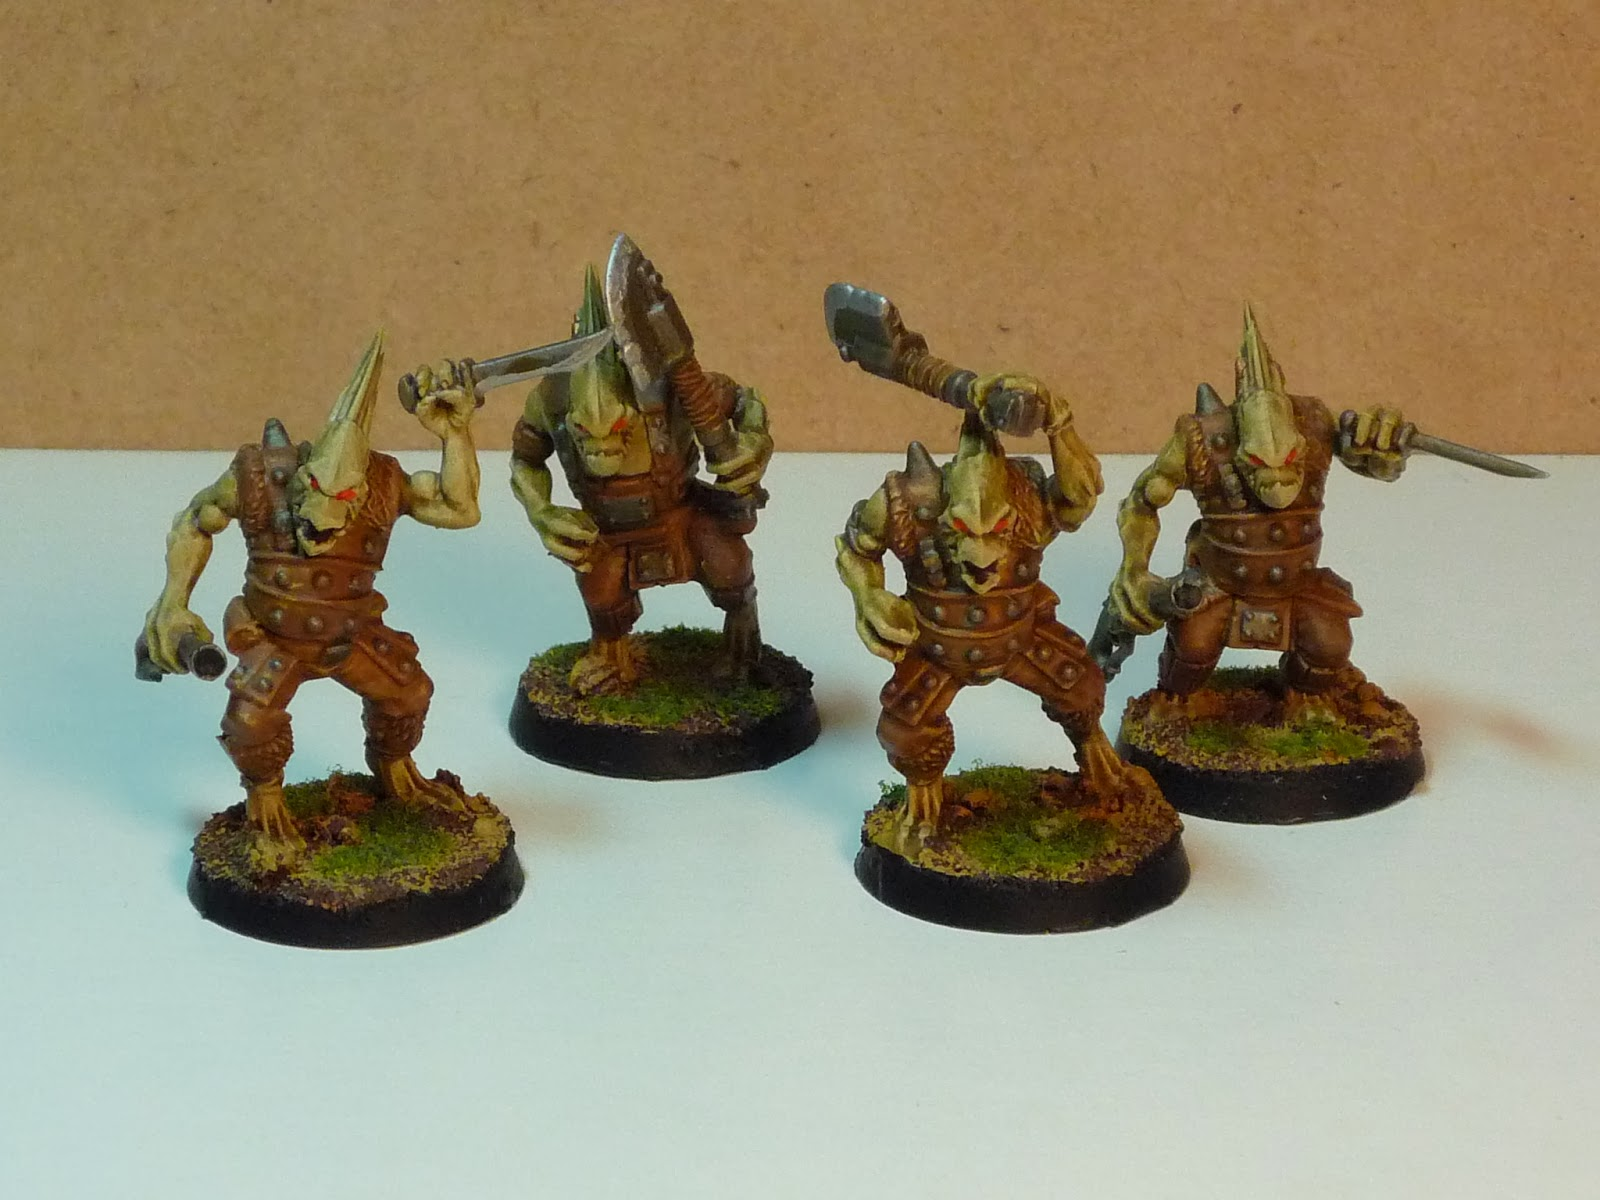 Smhit gamma goons for gamma world specifically chickenoidz and the famous and silly vegepygmies for the mutant chickens i used gorkamorka orks and kroot plastic bits publicscrutiny Image collections